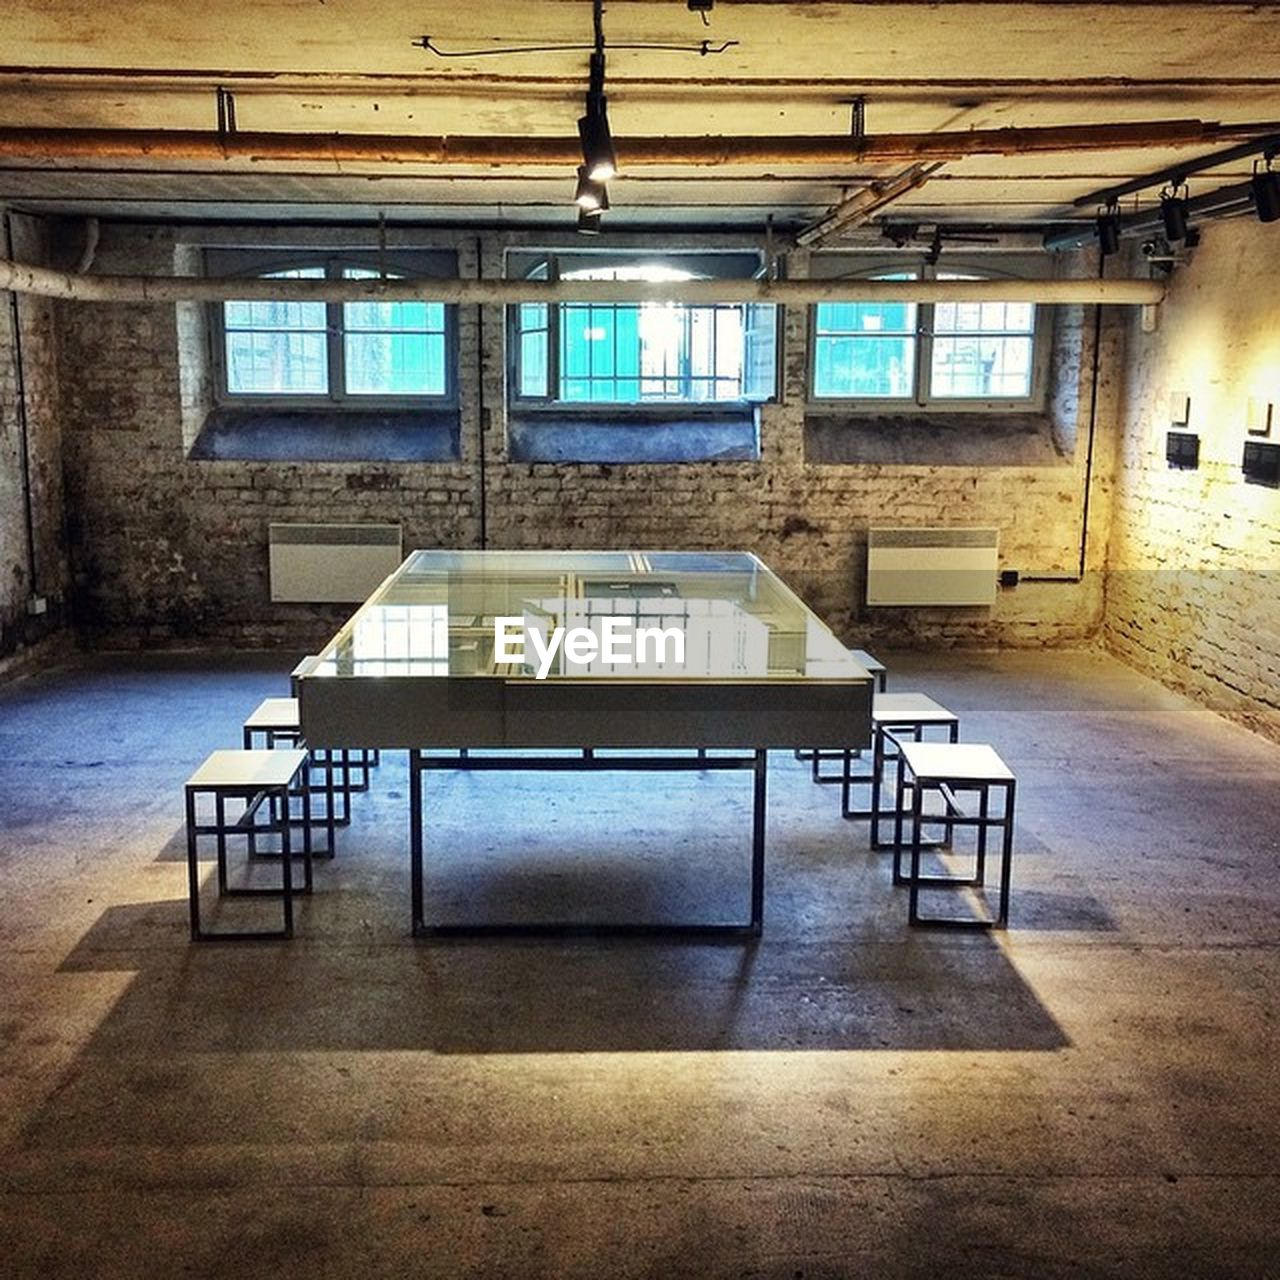 indoors, seat, table, absence, window, architecture, no people, empty, built structure, chair, day, building, furniture, wood - material, flooring, education, bench, old, wall - building feature, ceiling, setting